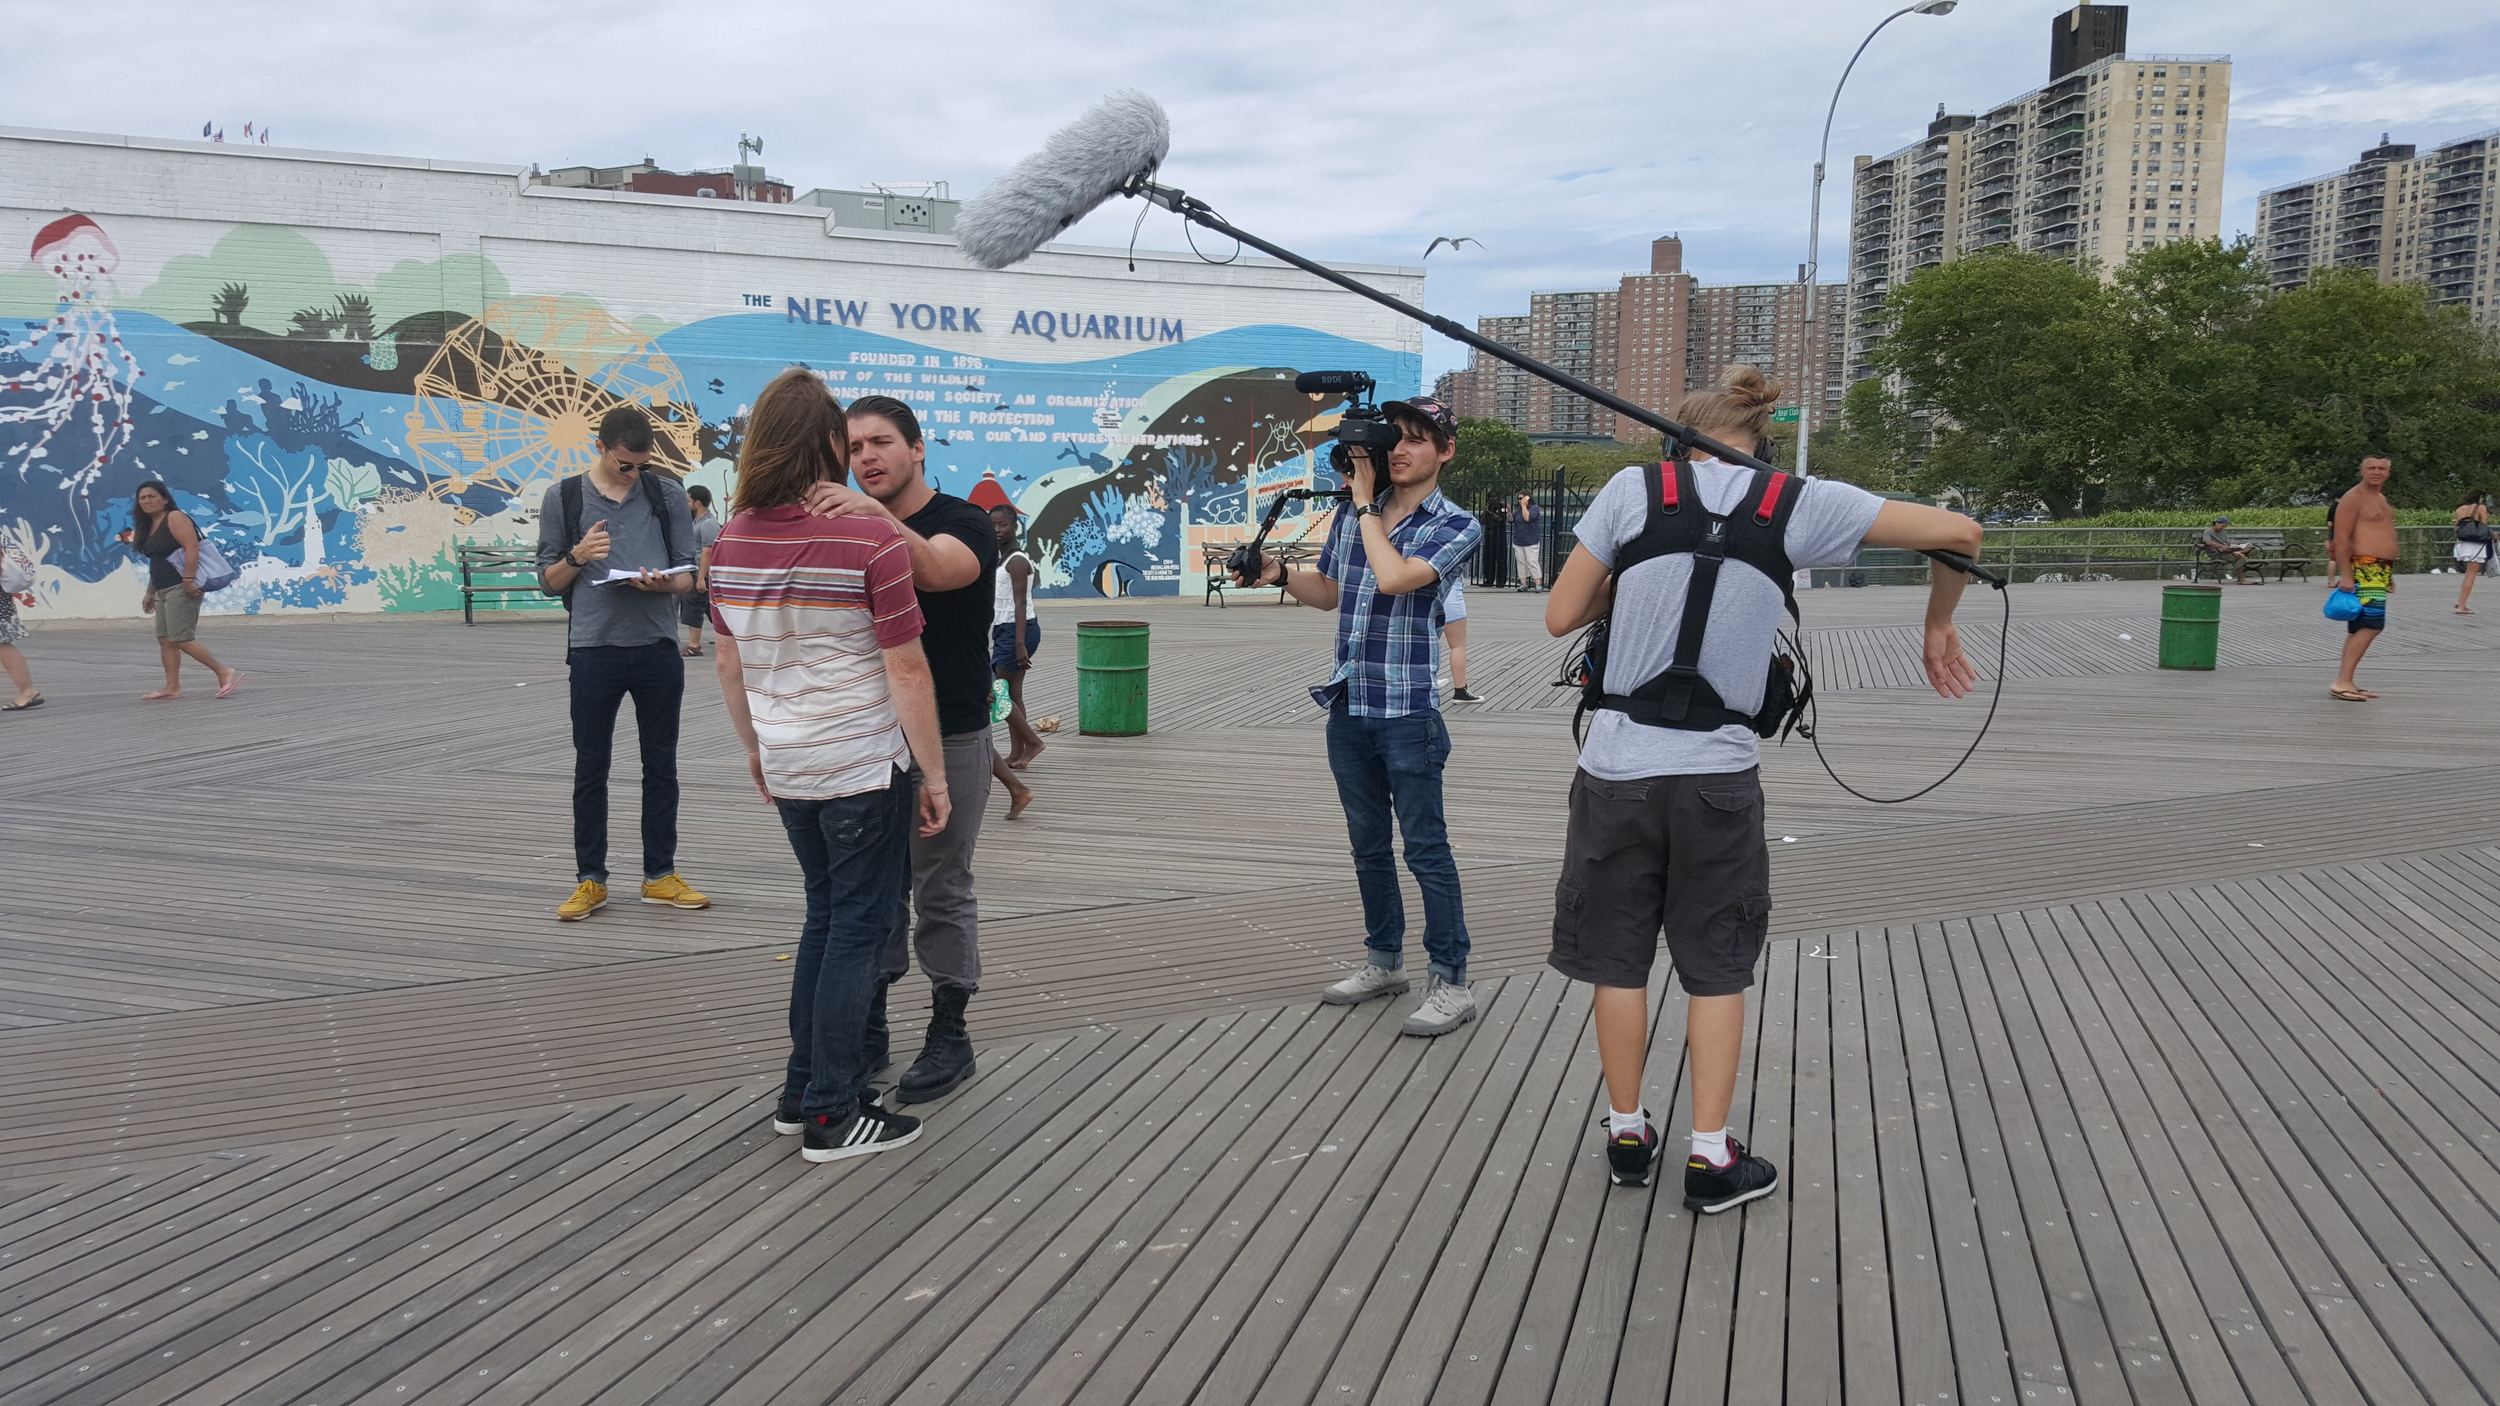 Our amazing team.From left to right: Dom (Producer), Russell (Ricky), Kevin (Charles), Adam (Director/DP) and Nik (Sound)on set at the Coney Island Boardwalk.Photo by Hanan (Gaffer/AC)!